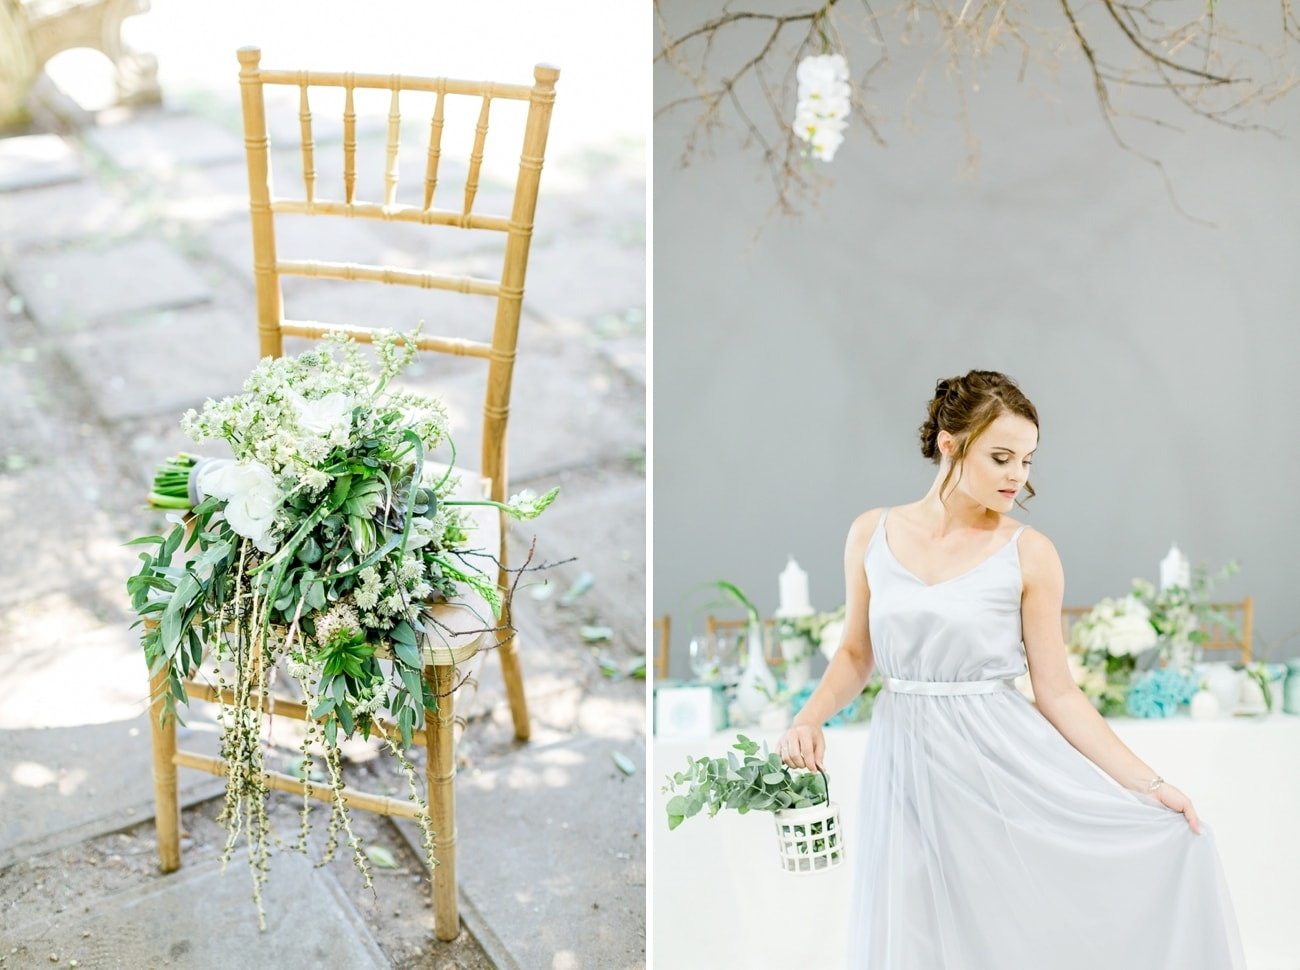 Dreamy Beach Wedding Details | Credit: Grace Studios / Absolute Perfection